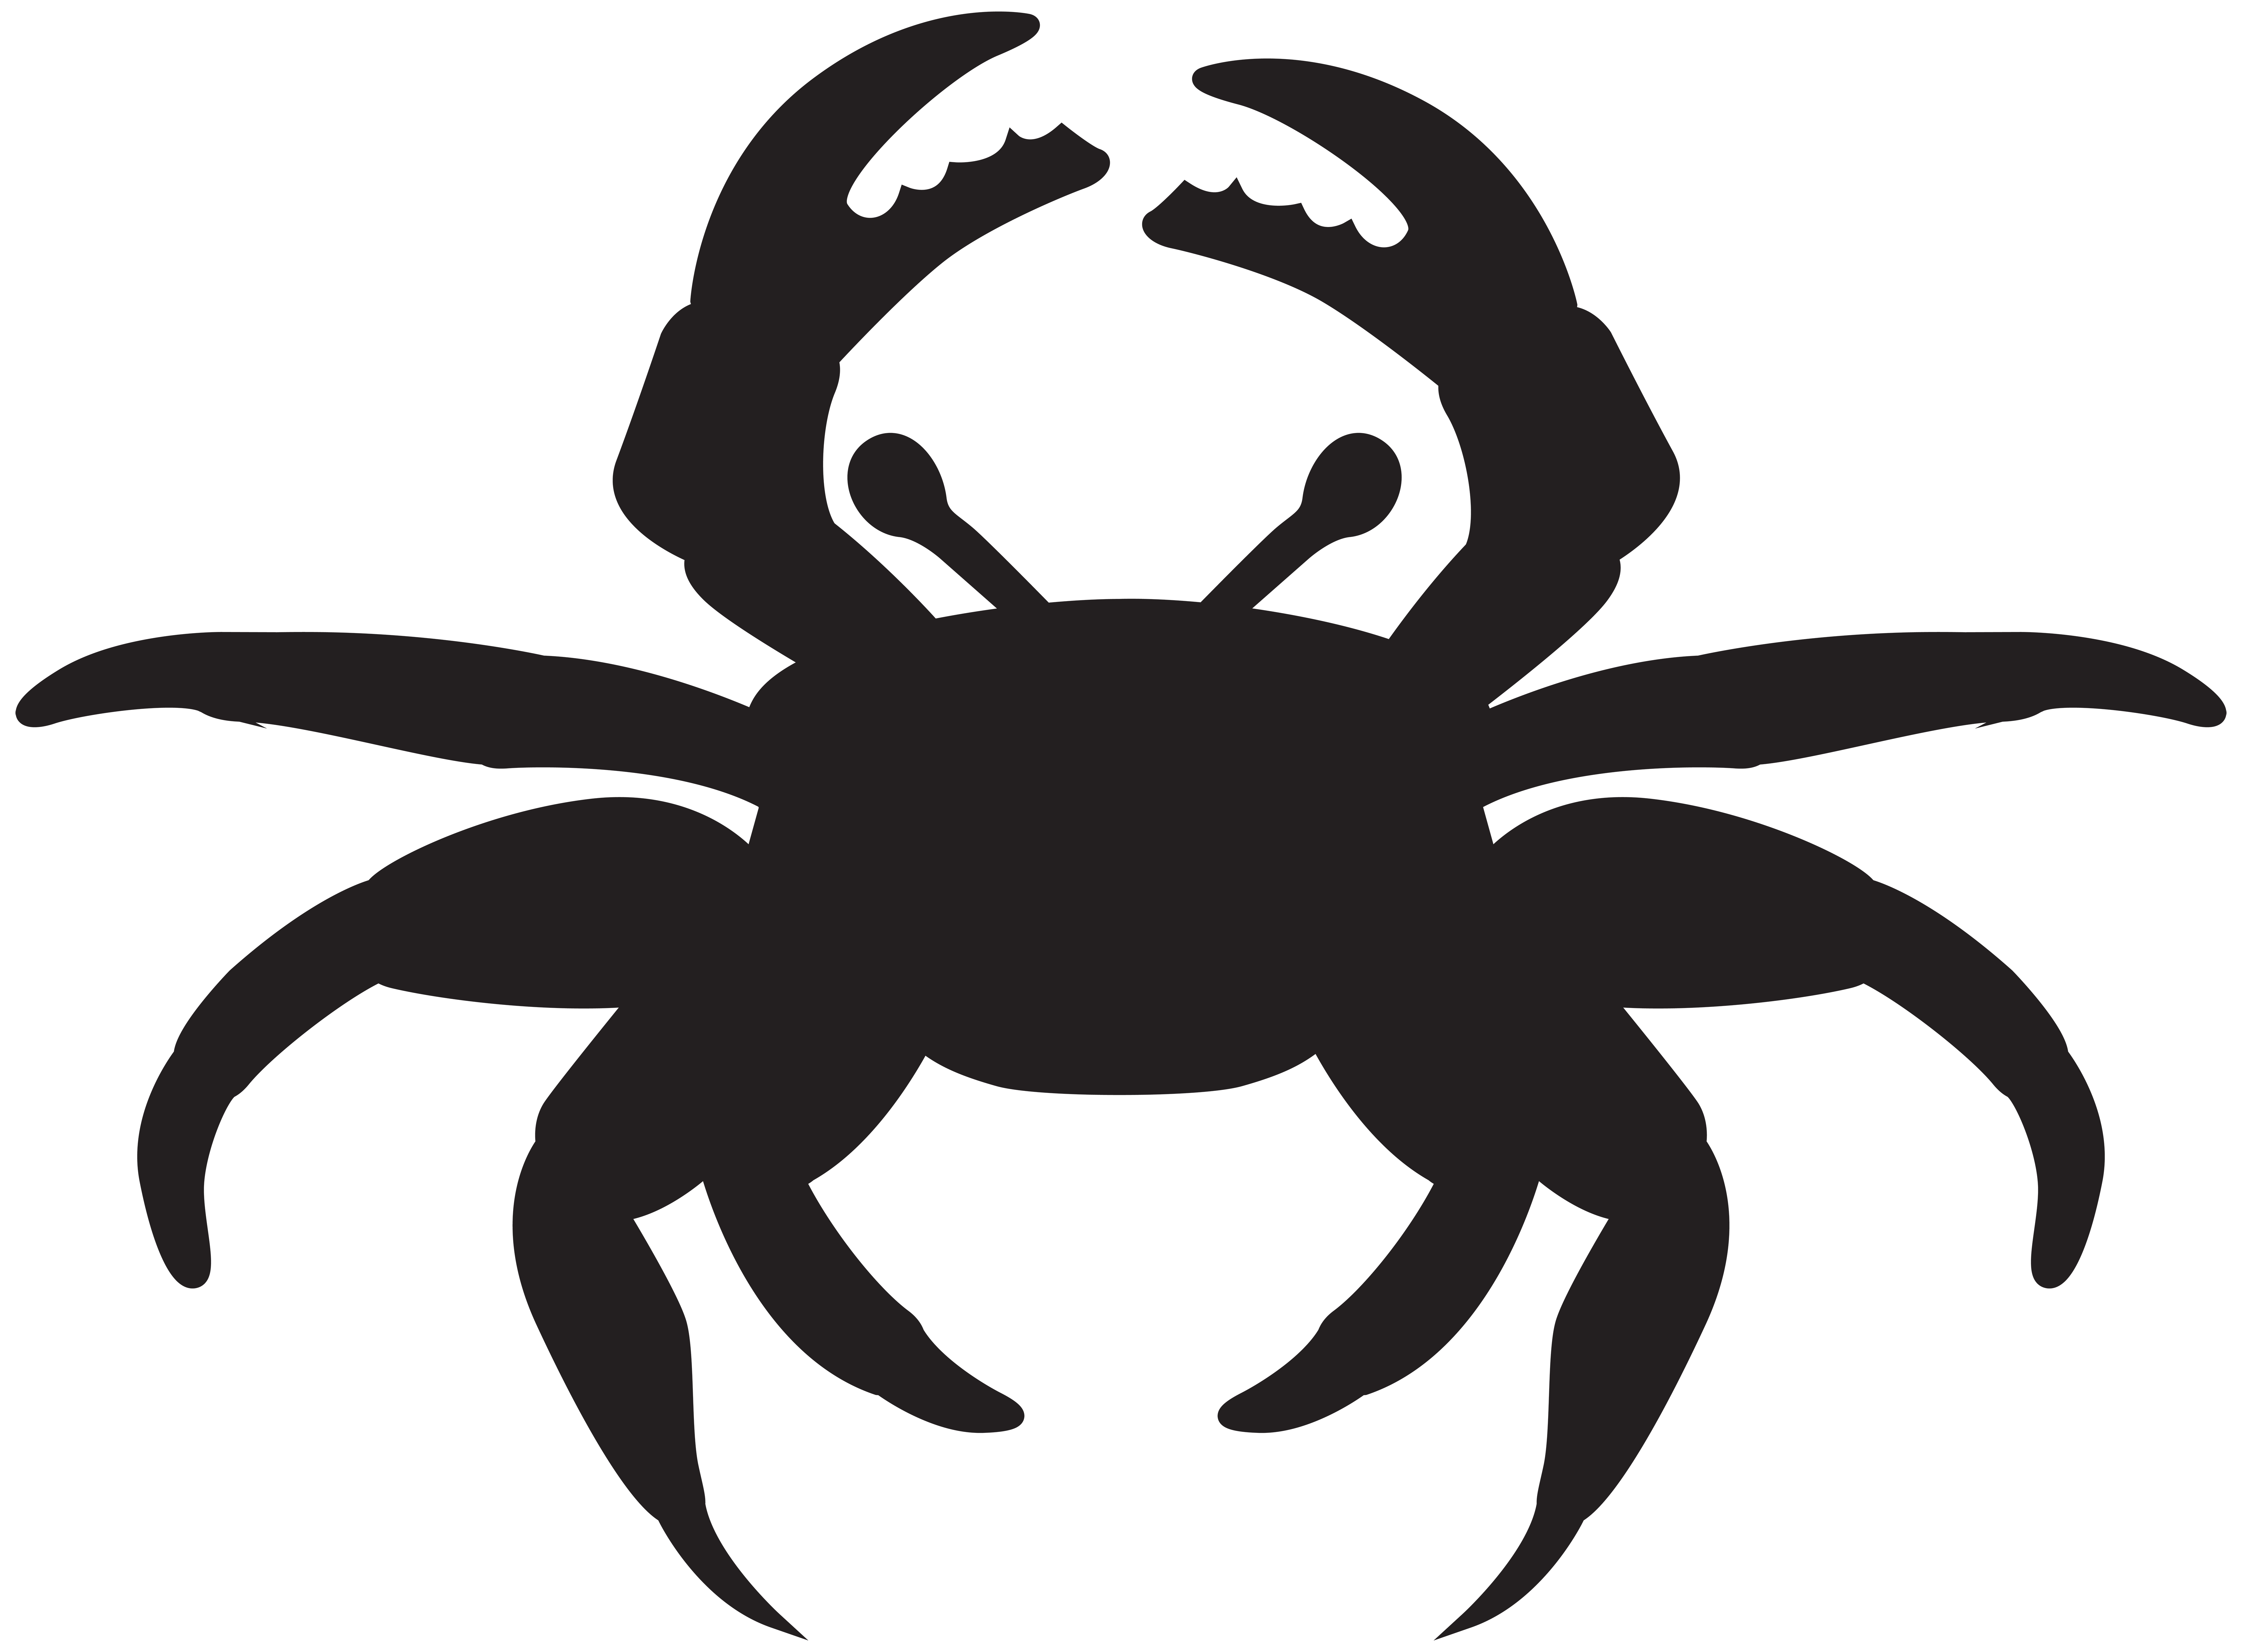 Lobster clipart crab maryland. Silhouette png clip art